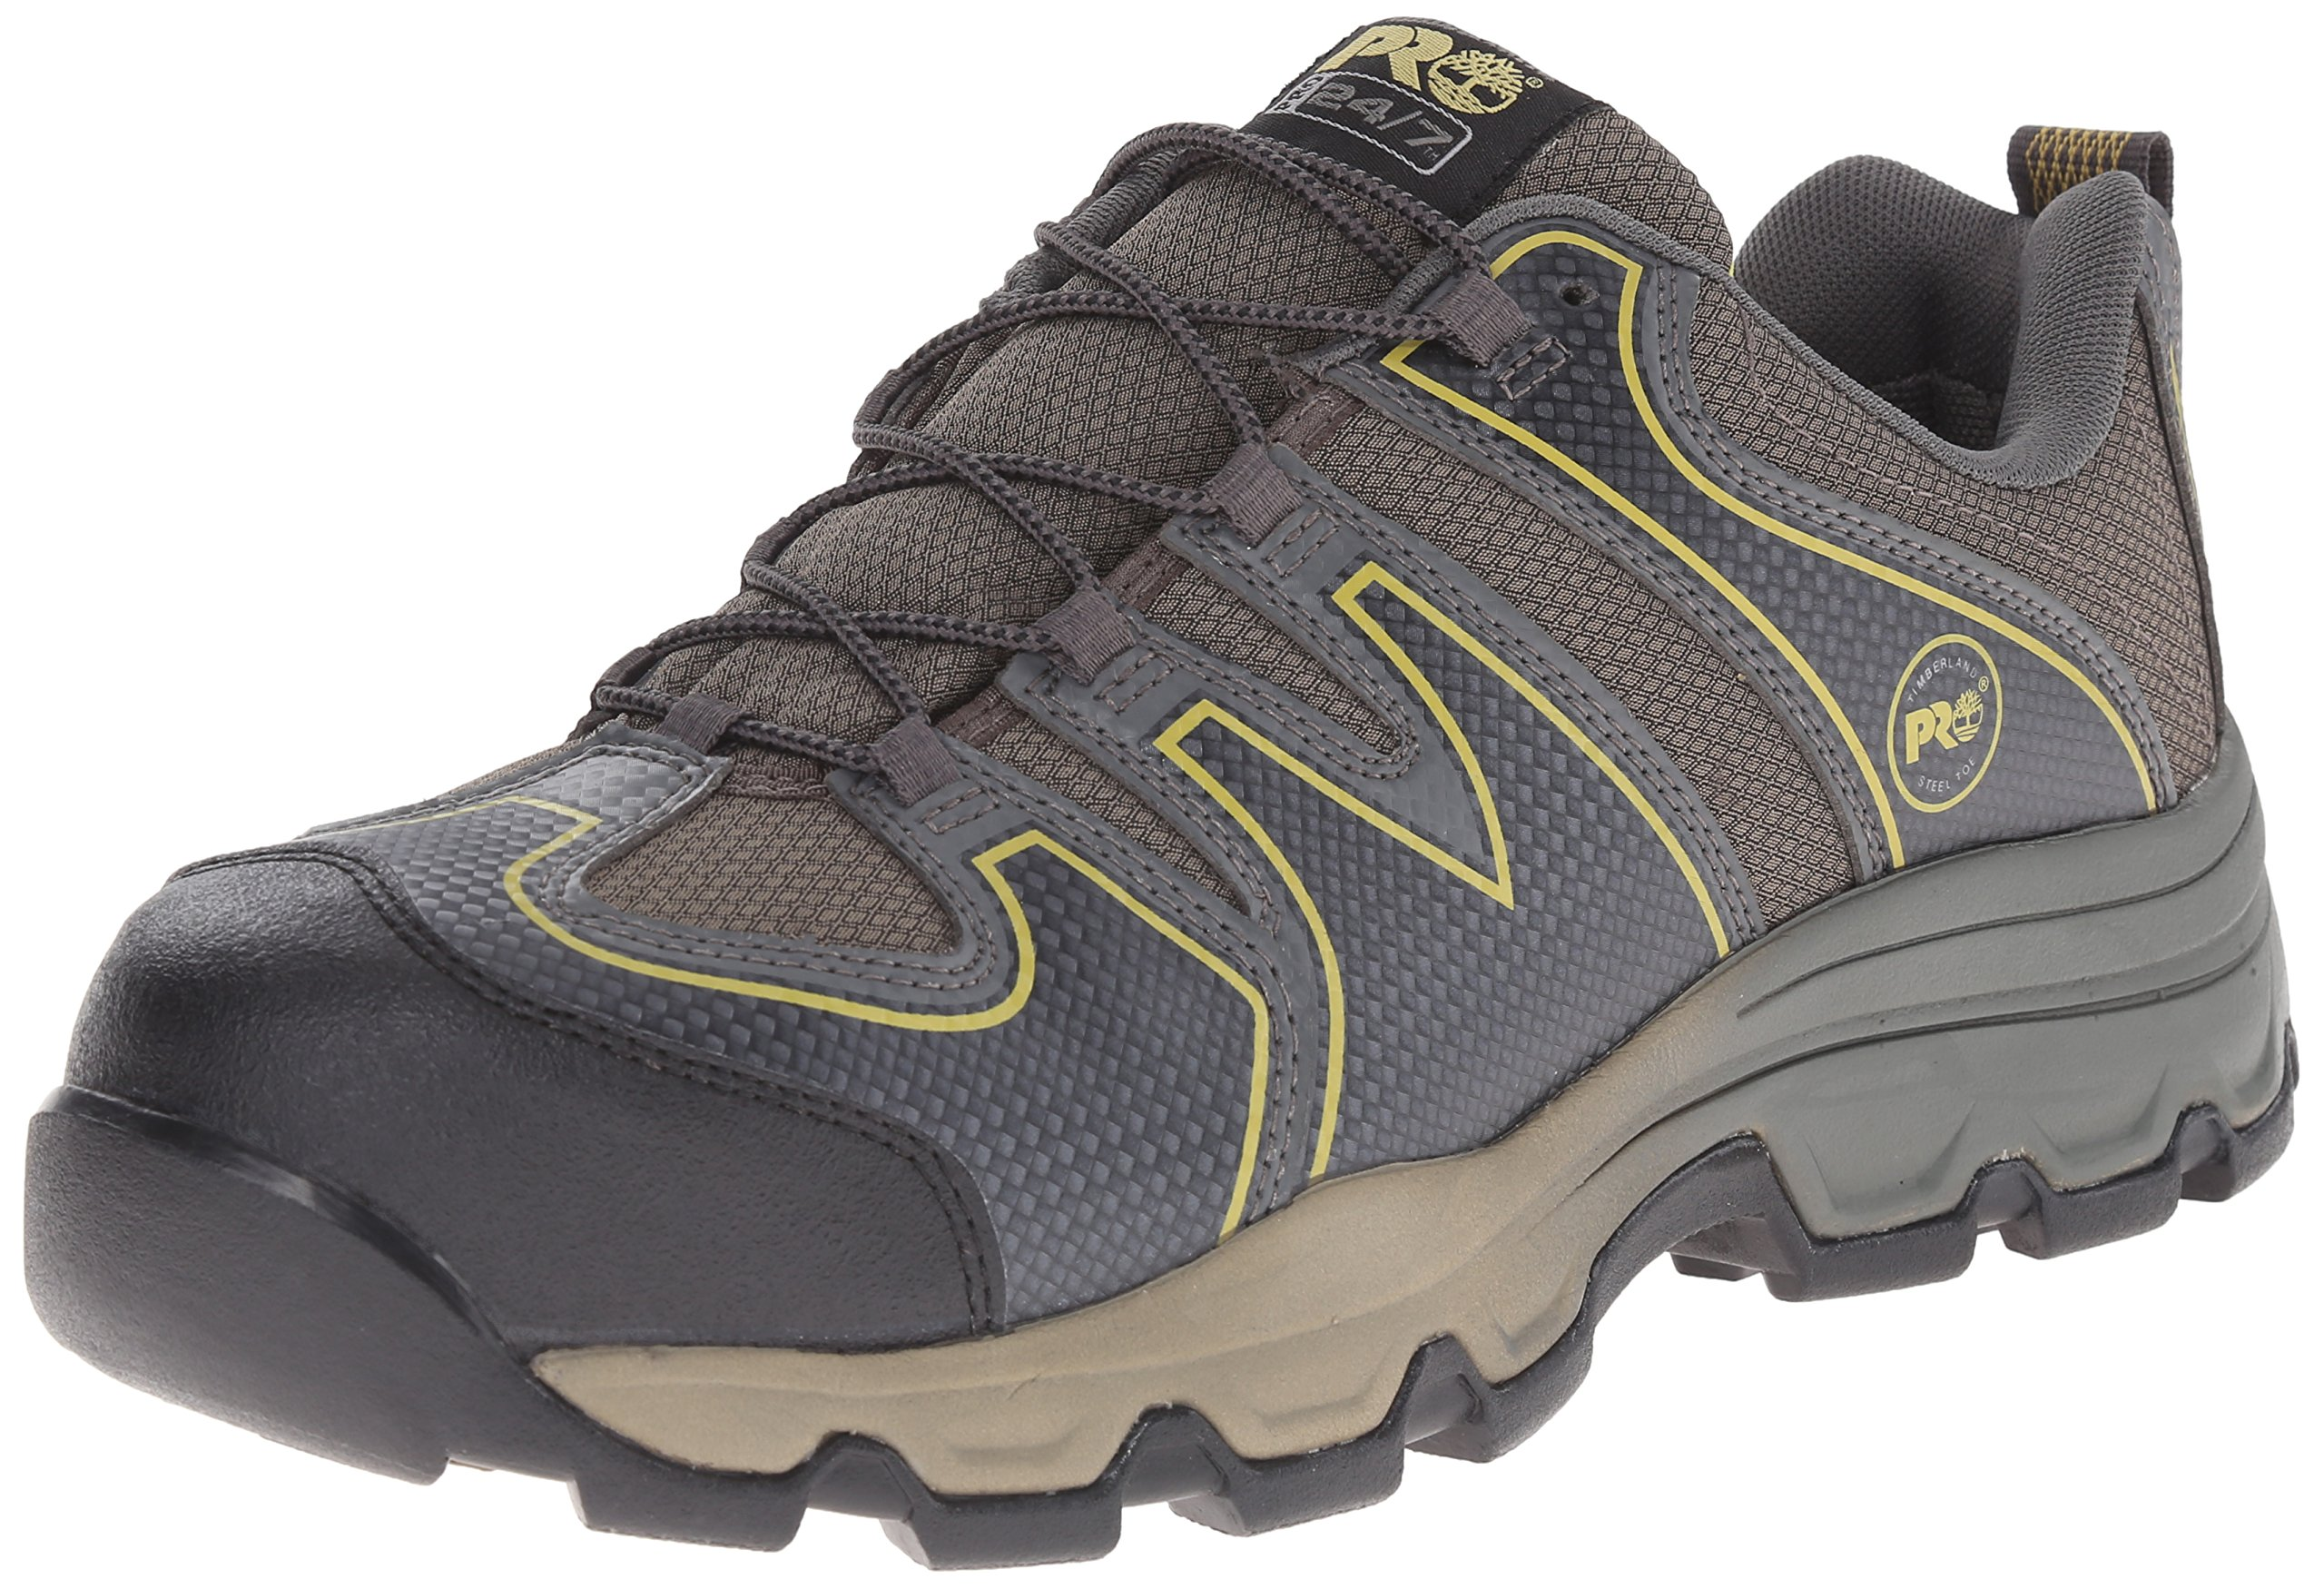 Timberland PRO Men's Rockscape Low Steel Toe Industrial Hiking Boot, Grey Synthetic with Yellow Pops, 11 M US